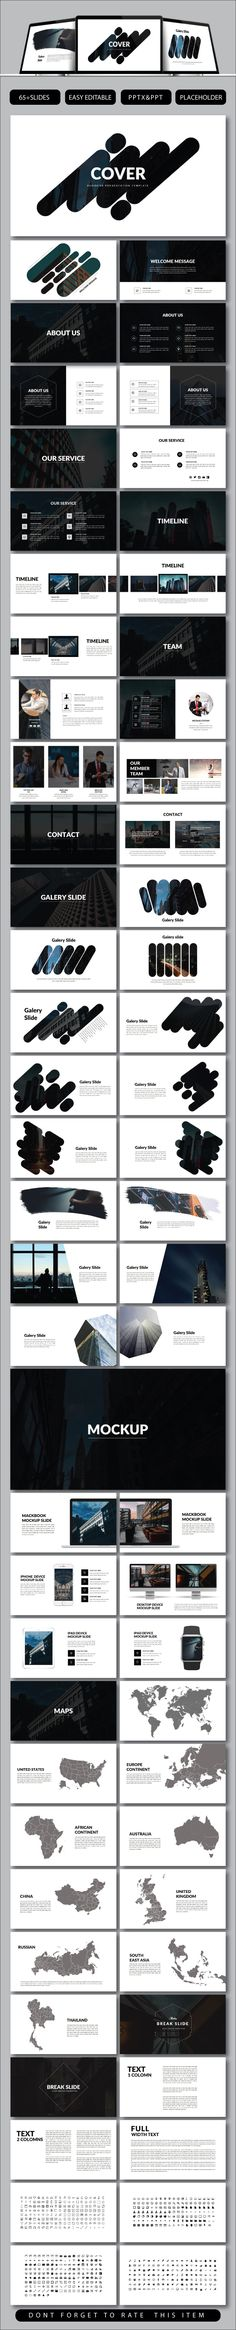 Cover Business Presentation - PowerPoint Templates Presentation Templates